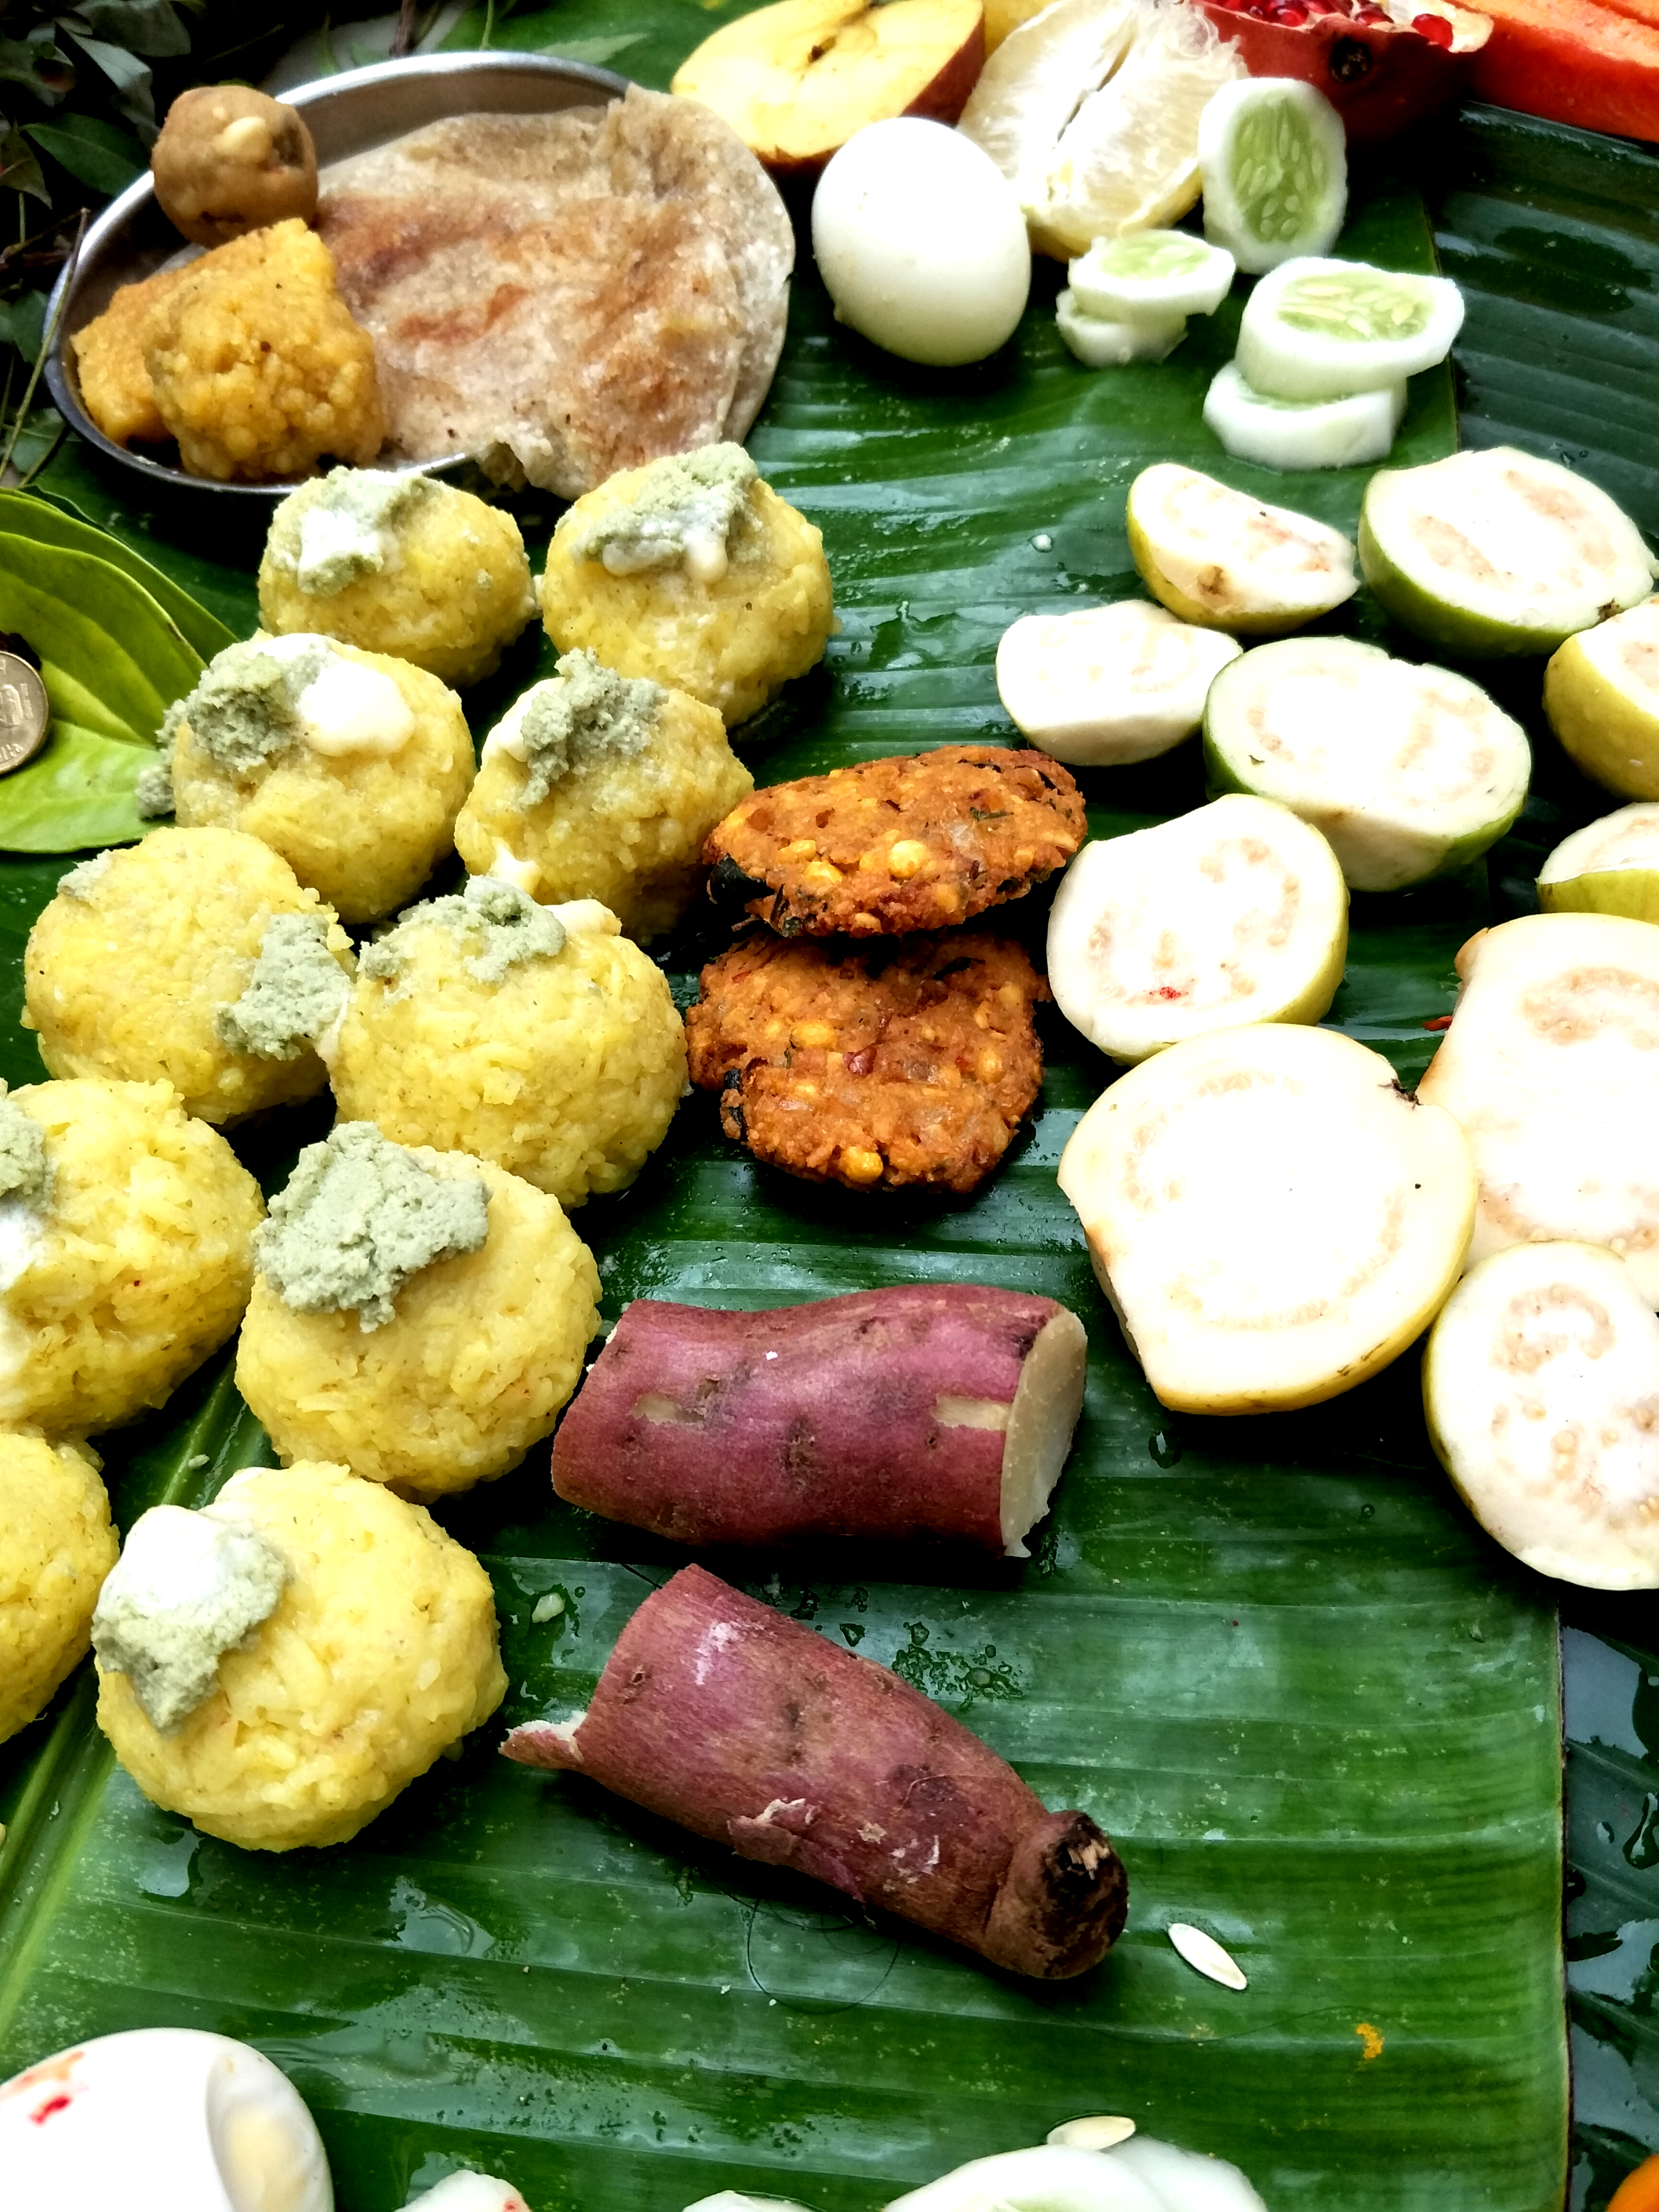 The Famed Festival of Ganesh Chaturthi and The Amazing Food